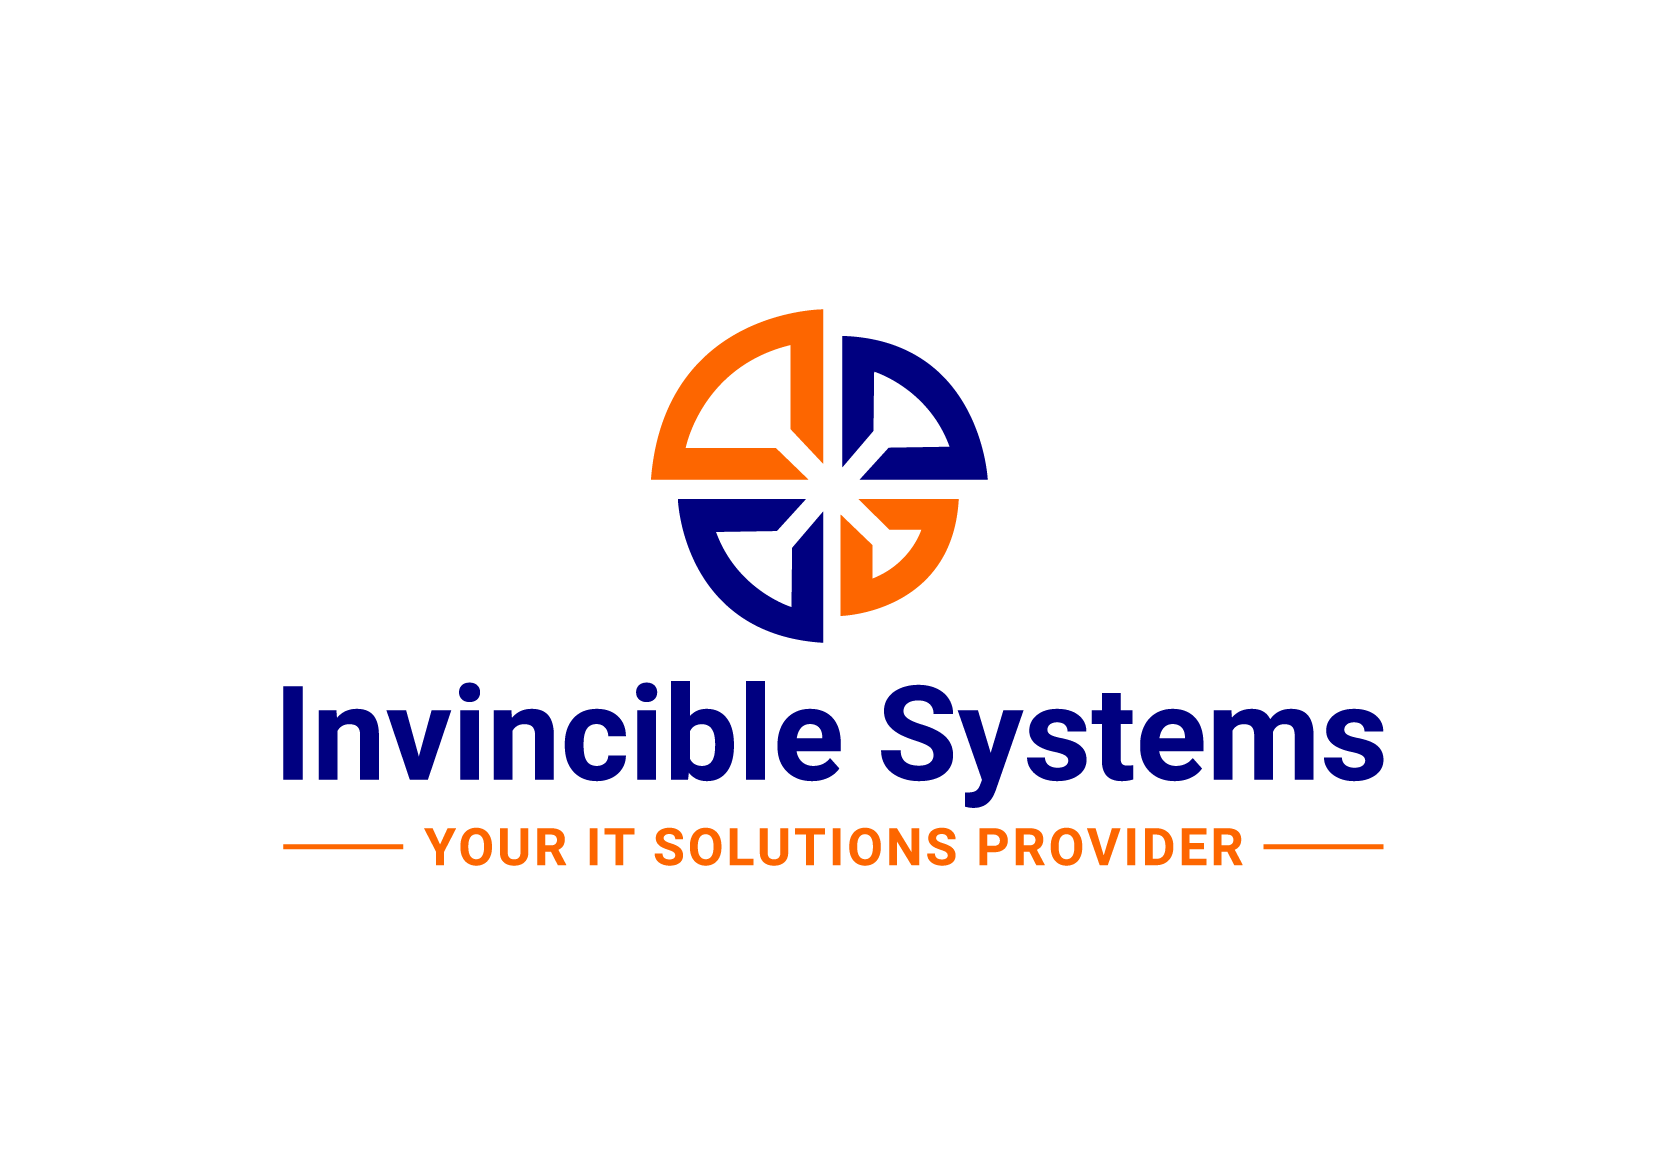 invincible systems